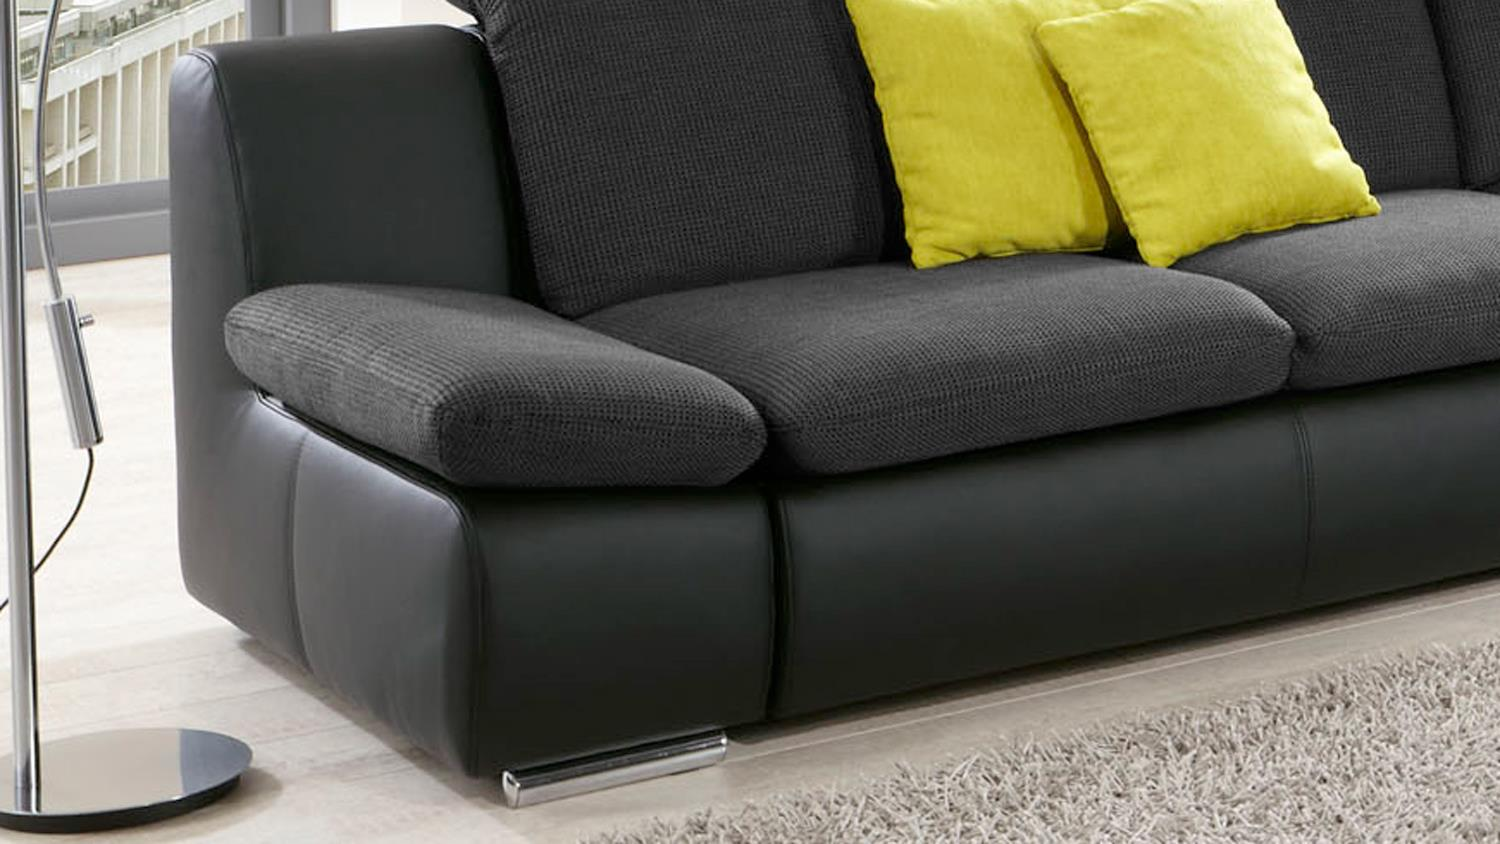 ecksofa isona schwarz dunkelgrau kopfteilverstellung armteilfunktion. Black Bedroom Furniture Sets. Home Design Ideas